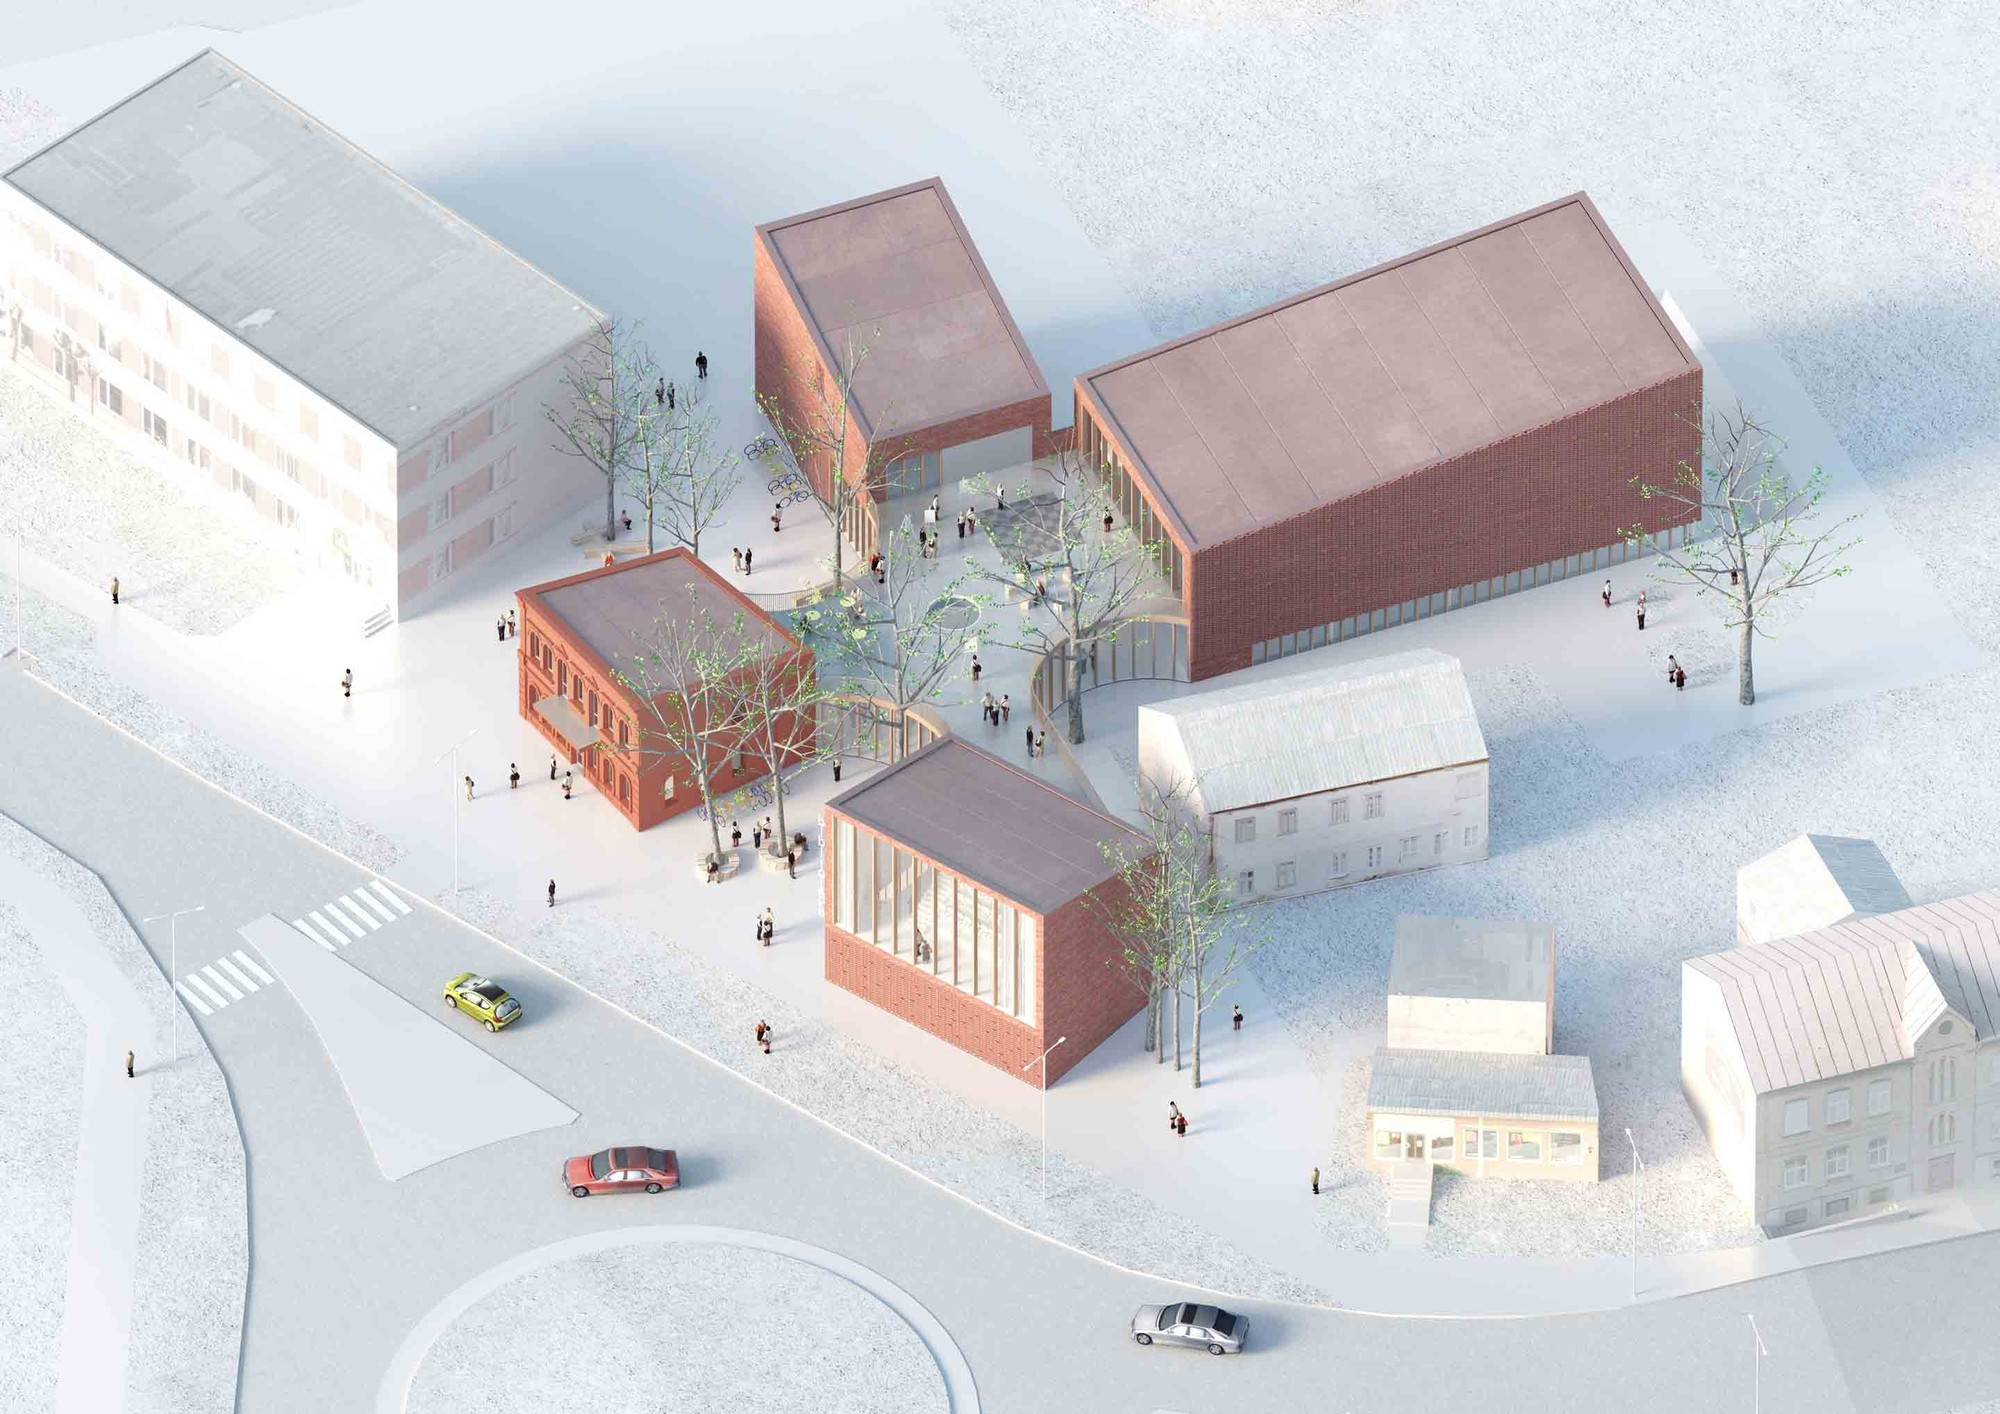 Library building in bauska winning proposal a2sm architects archdaily - Architecturen volumes ...